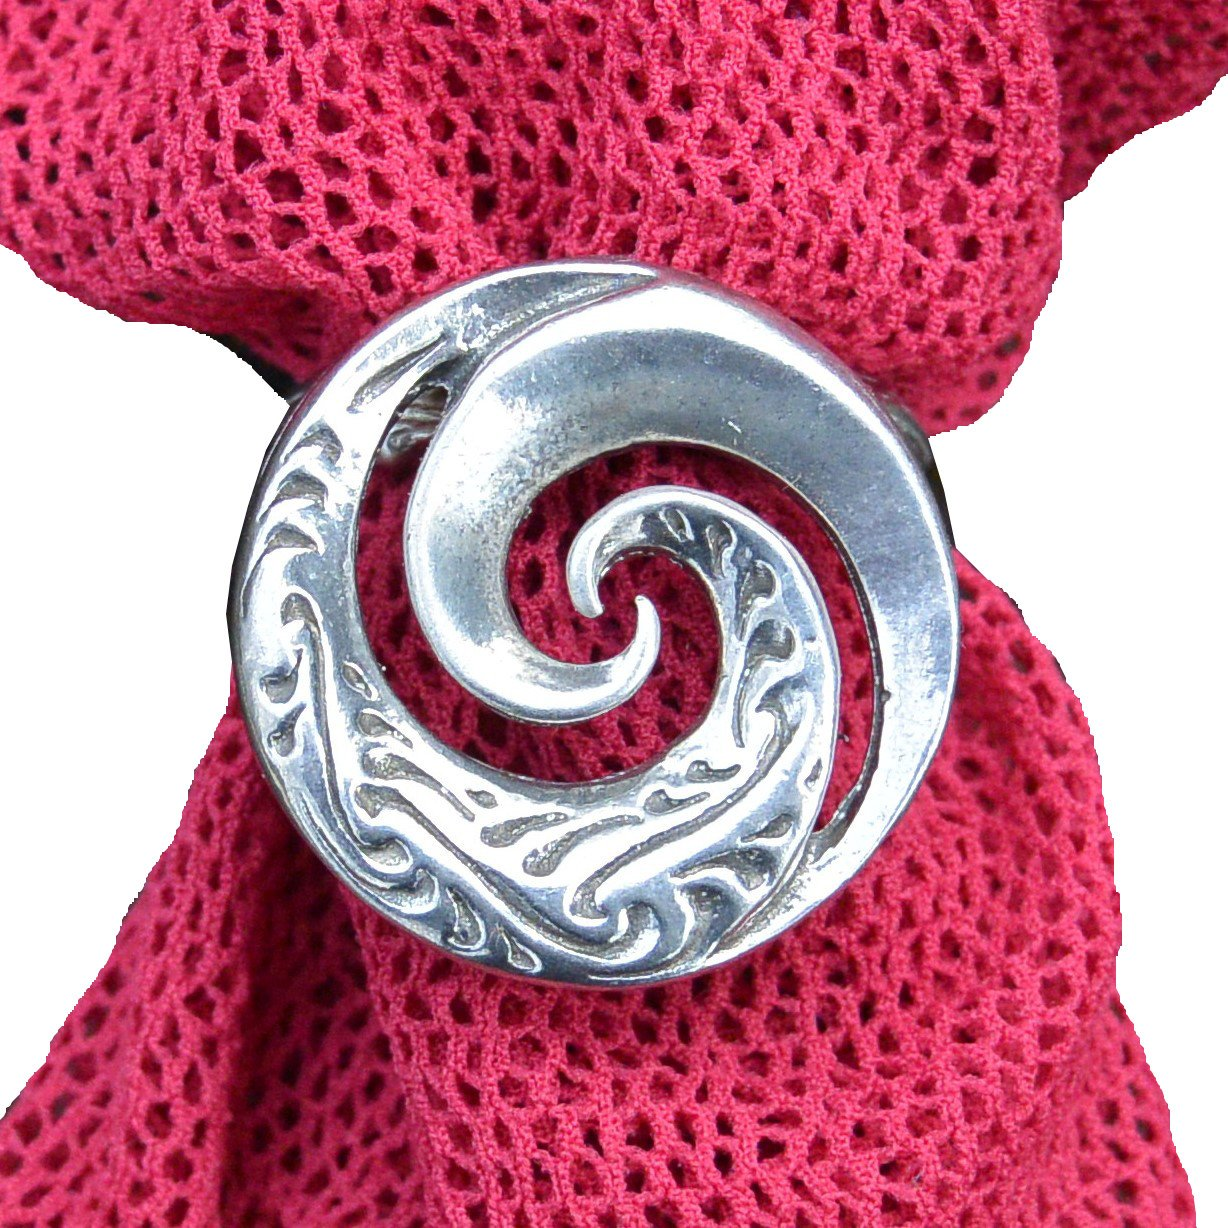 Luxury Fine Pewter Maori Koru Spiral Scarf Ring, Handcast by William Sturt